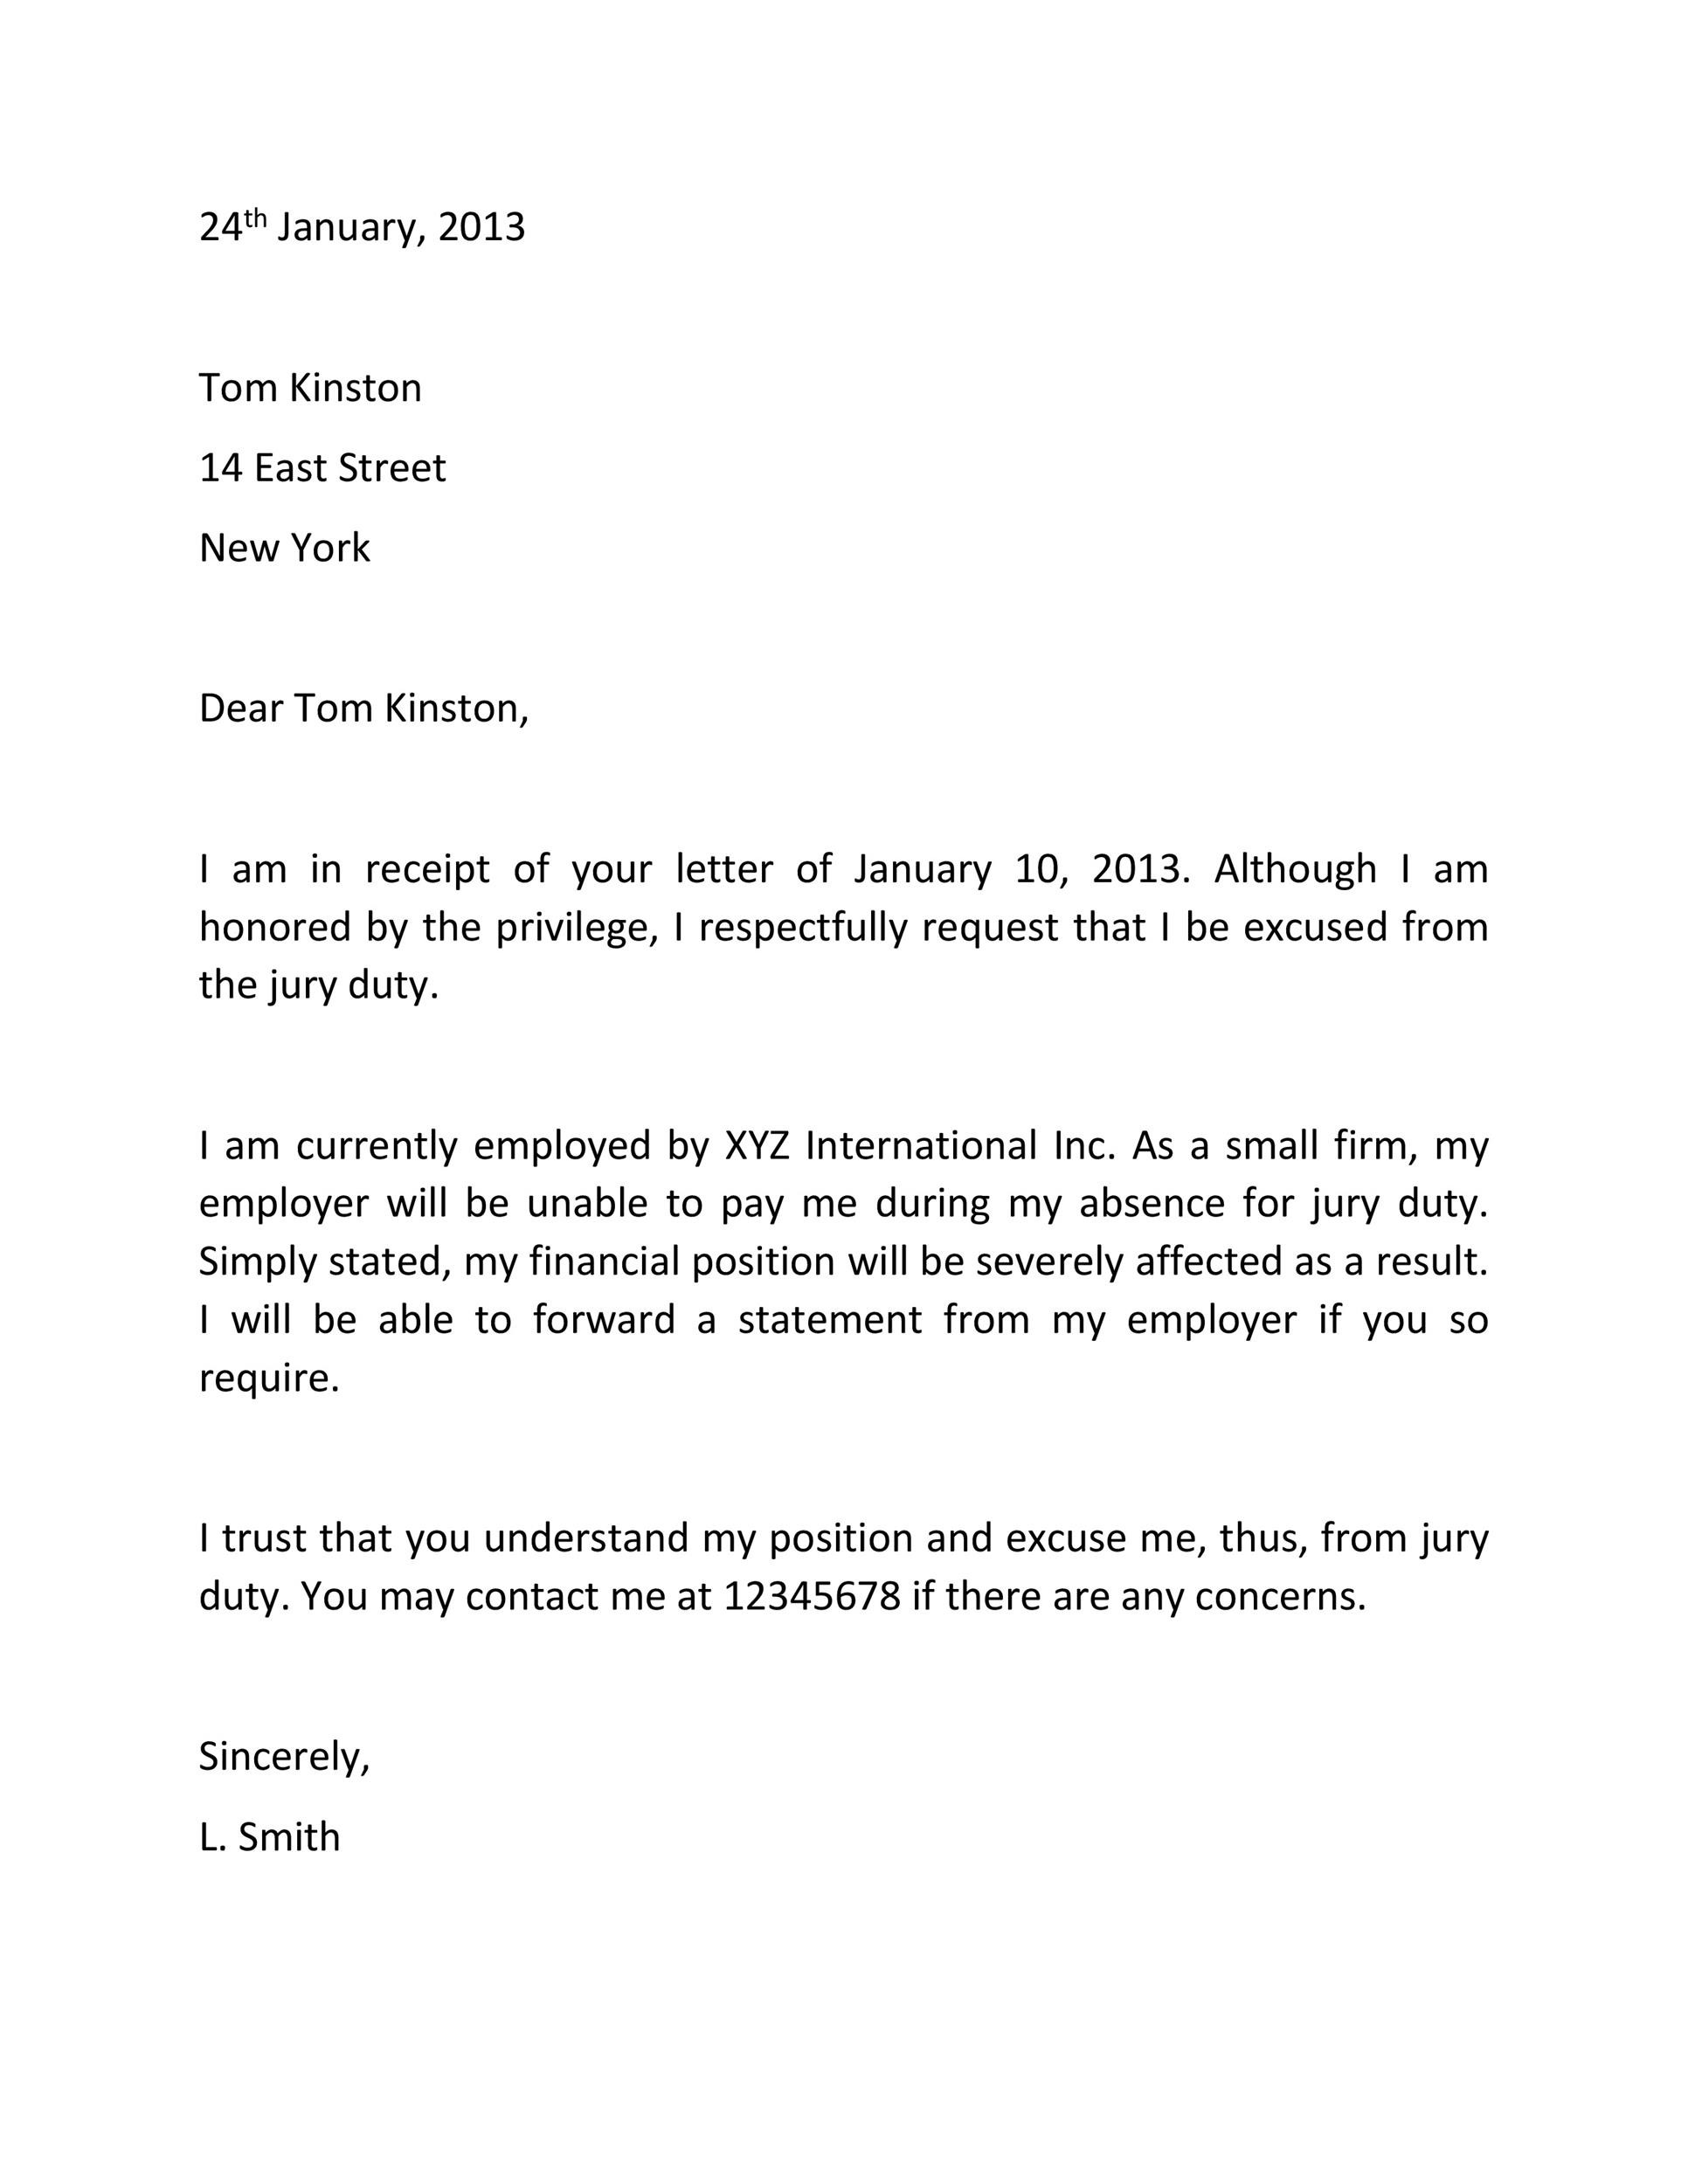 Free jury duty excuse letter template 23